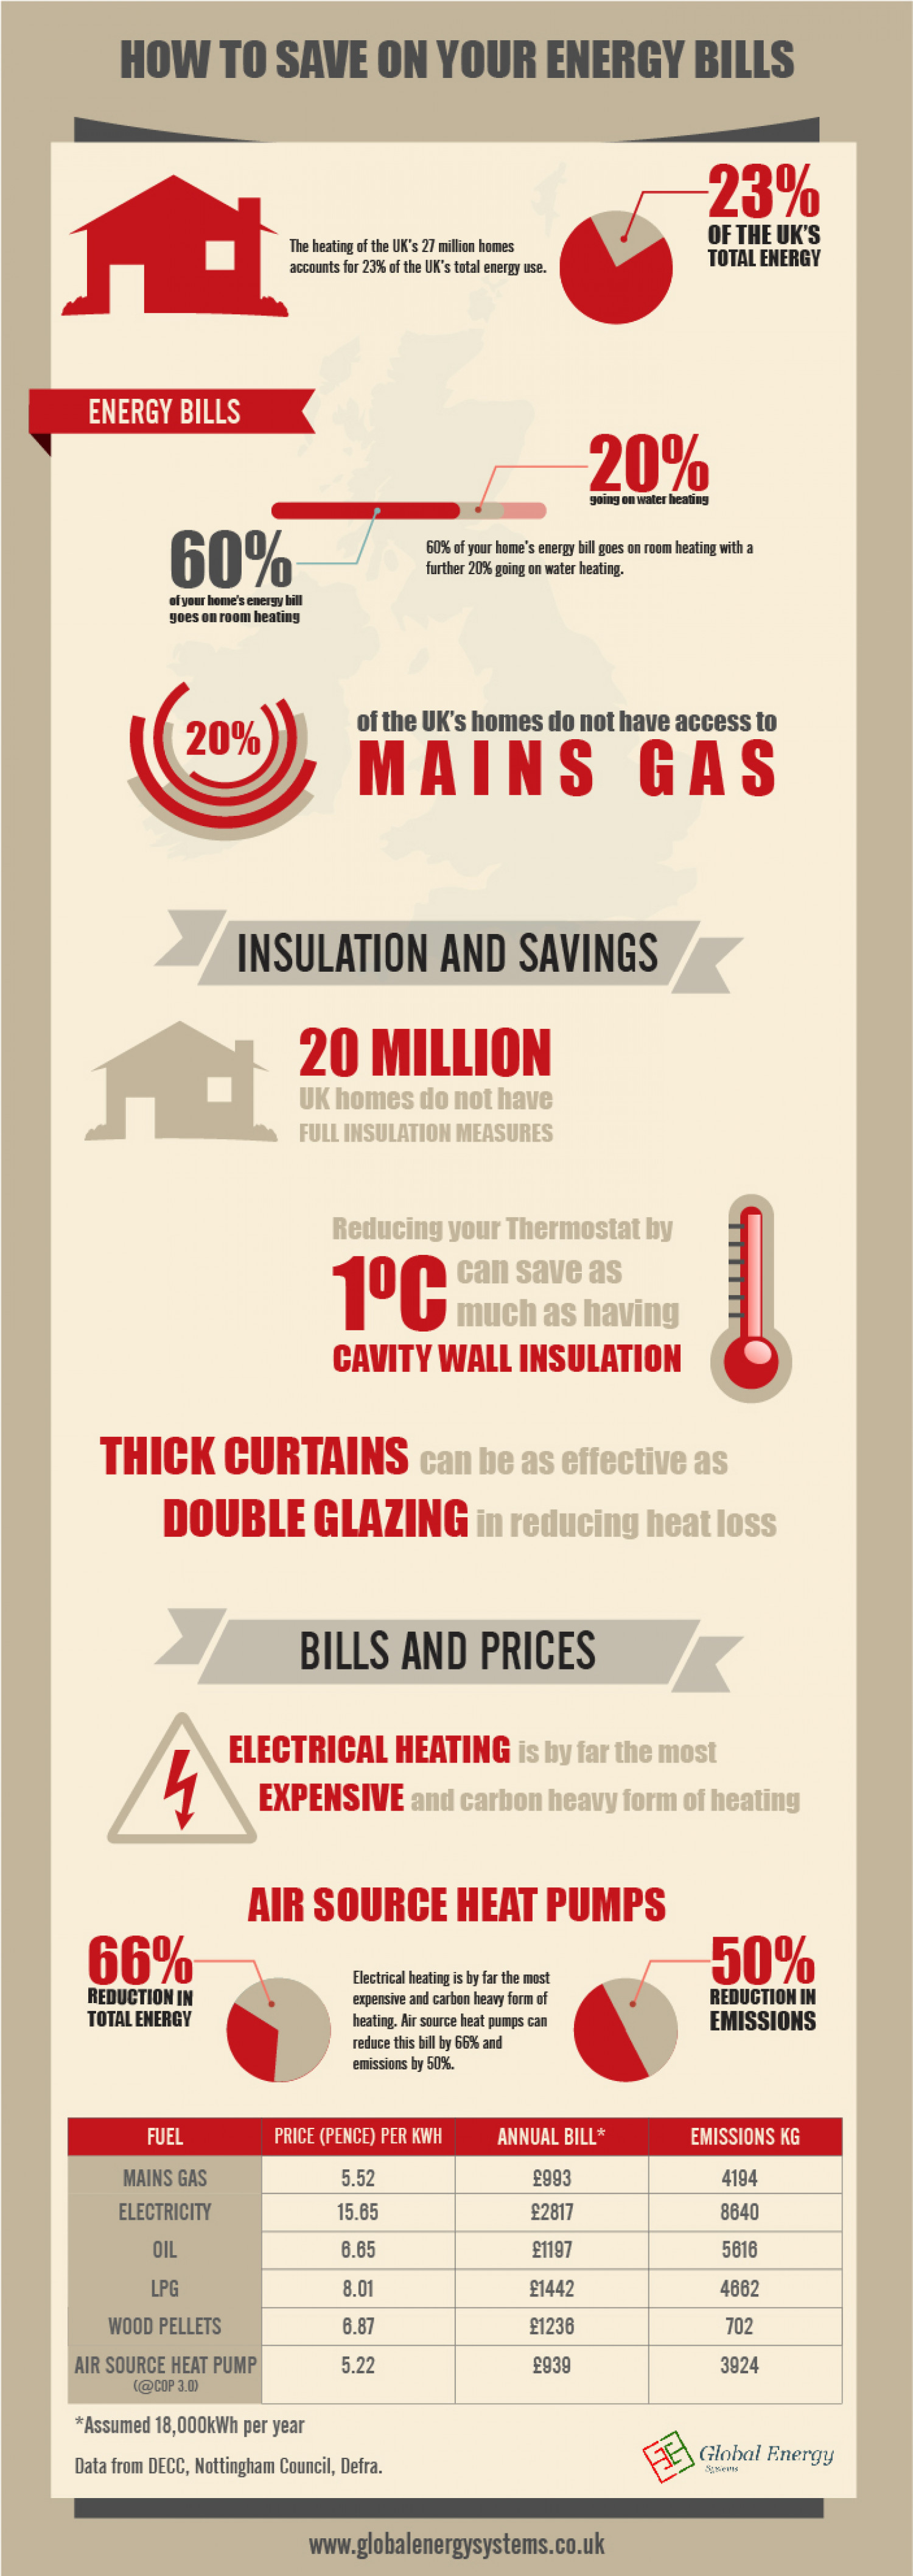 How to Save on Your Energy Bills Infographic